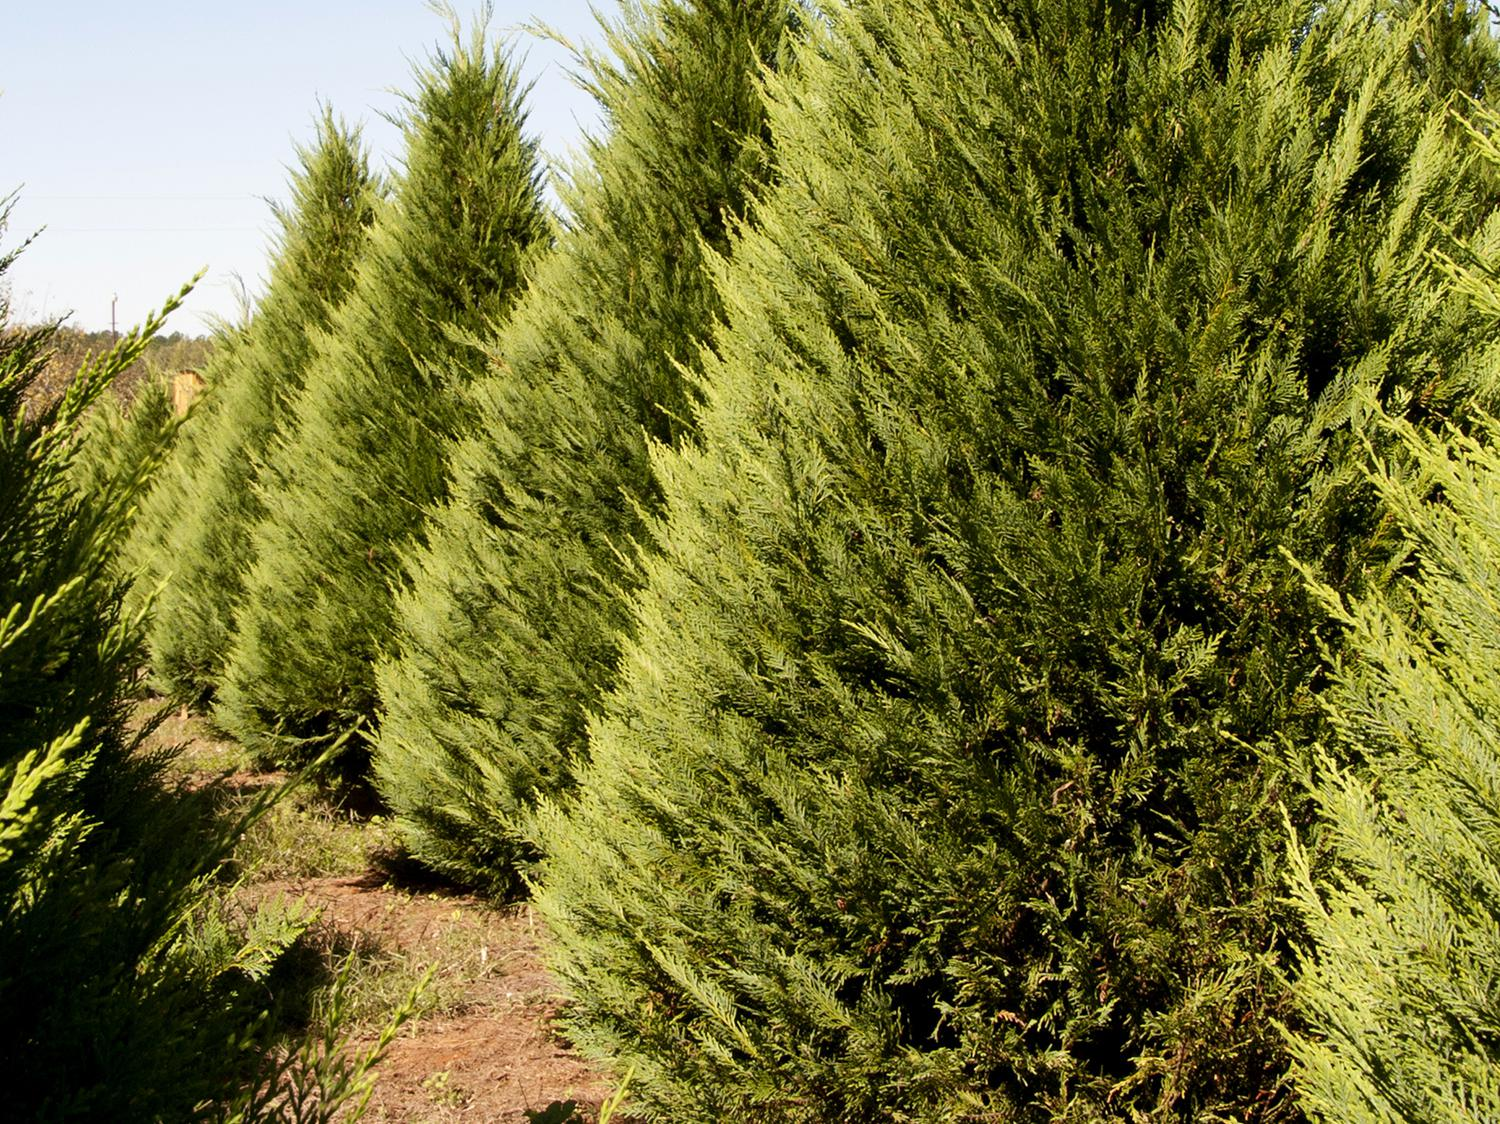 Expect to pay anywhere from $7 to $10 per foot for a choose-and-cut Christmas tree this year. (File photo by MSU Extension/Kat Lawrence)